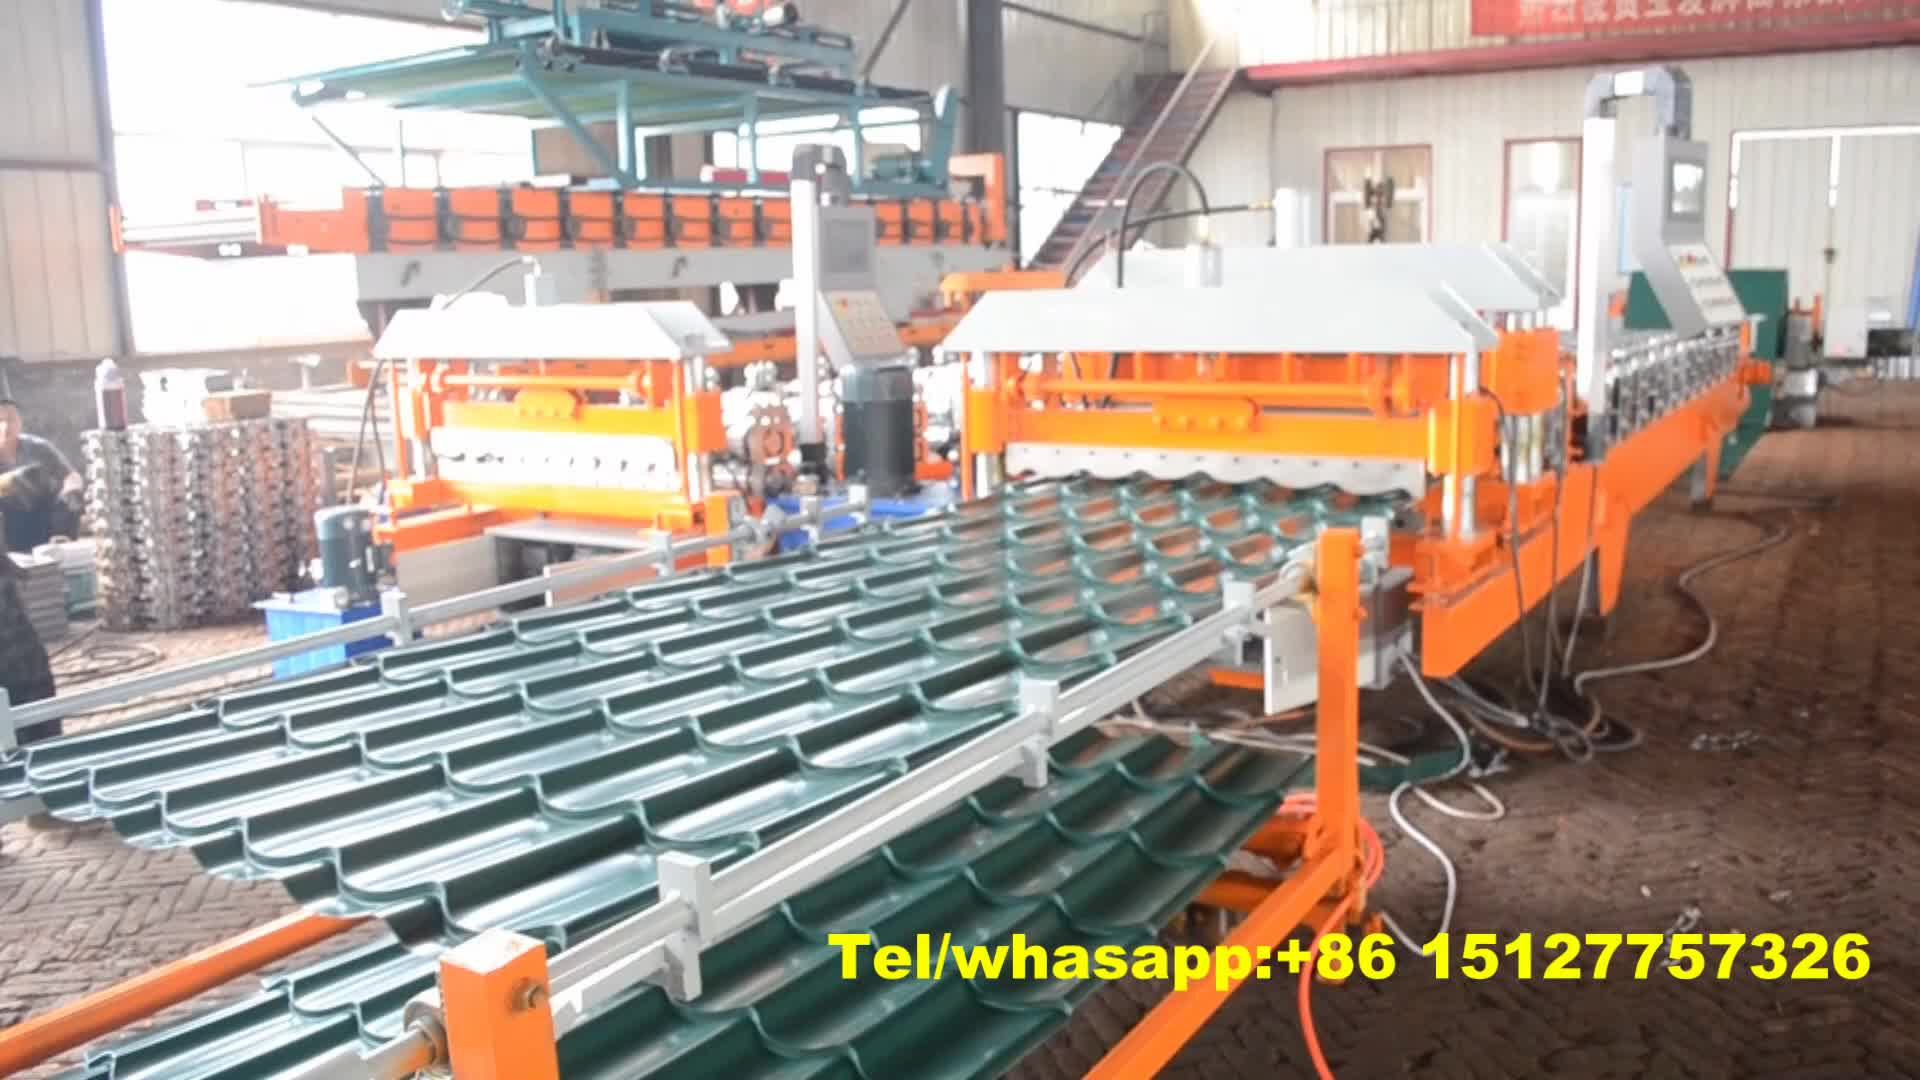 1100 c tile water ripper glazed step tile steel making roll forming machine